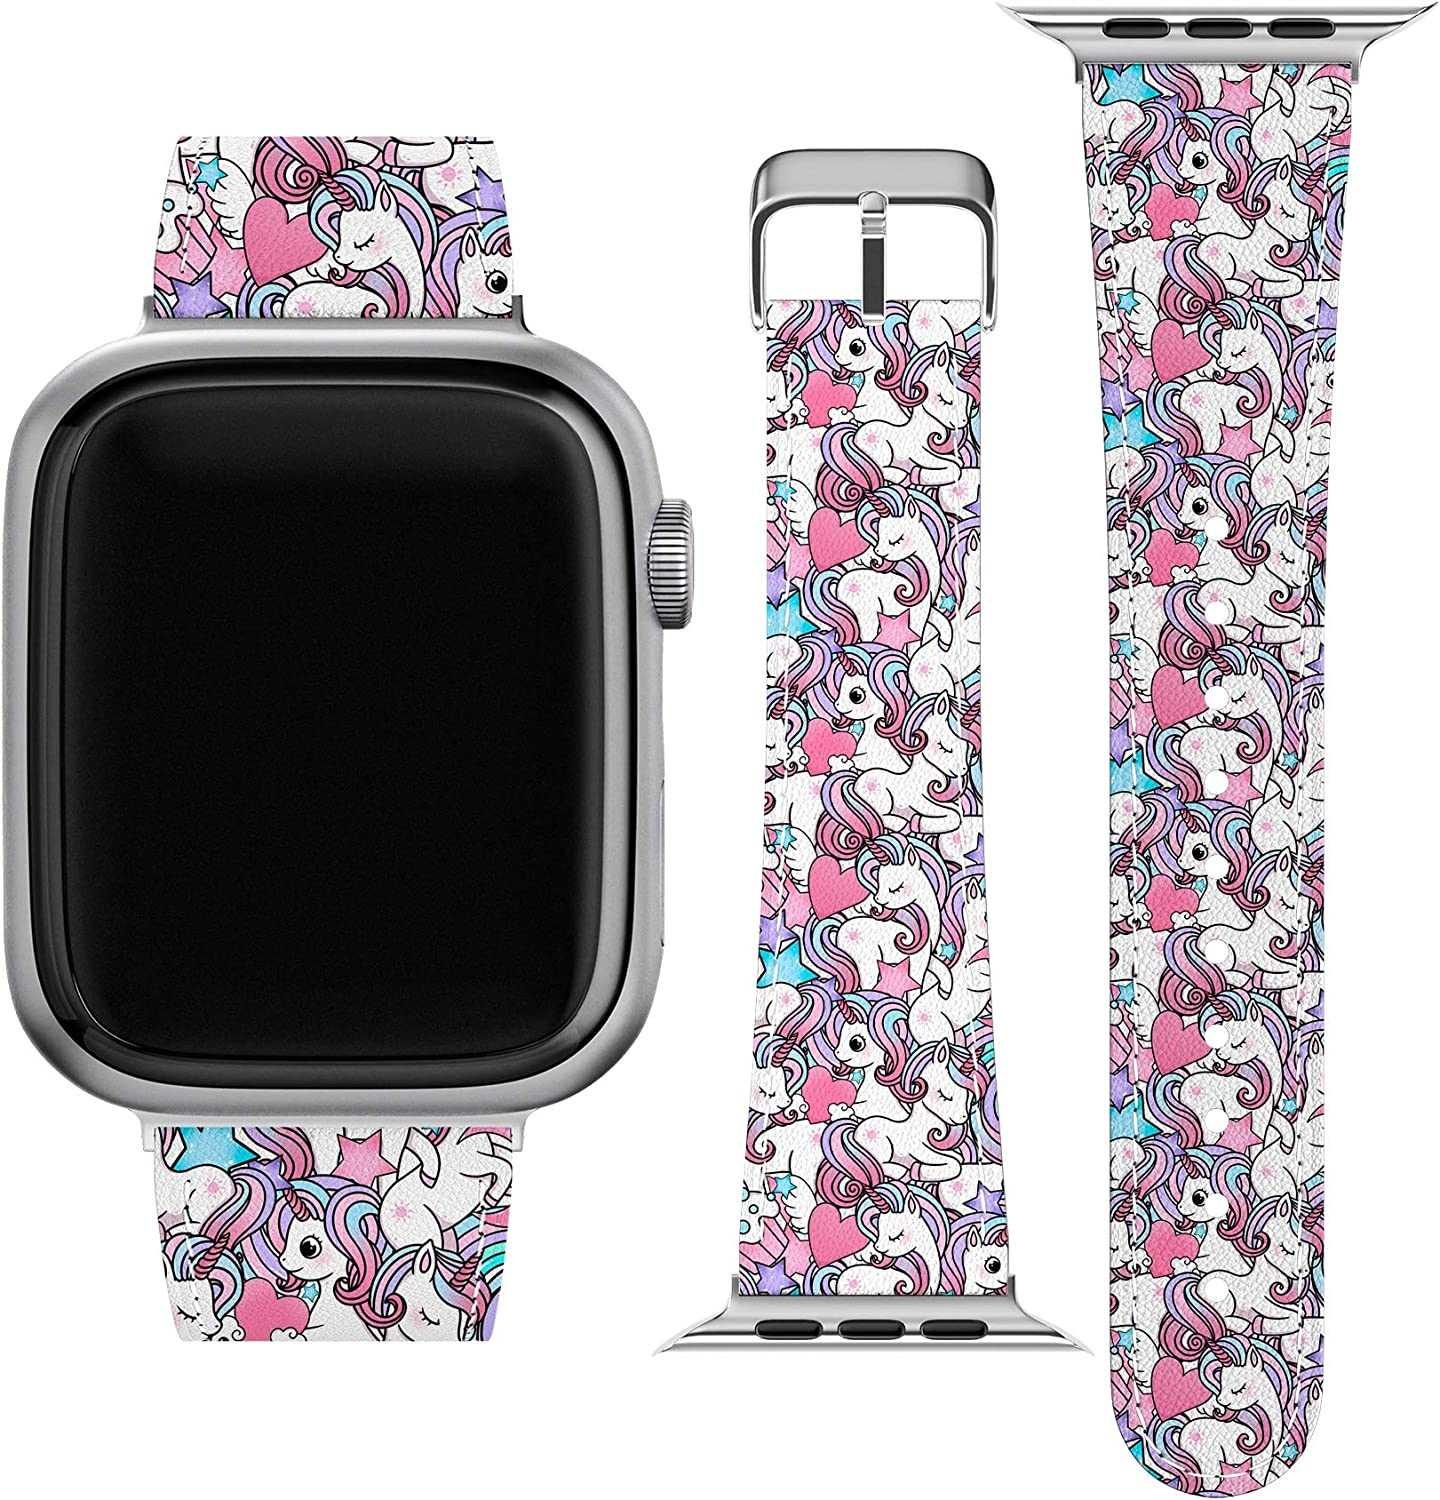 Lex Altern Band Compatible with Apple Watch Series 6 SE 5 4 3 2 1 38mm 40mm 42mm 44mm Unicorns Pony Magical Kawaii Thin Durable Stylish Replacement Strap for iWatch Cute Girly Pink Vegan Leather wh066